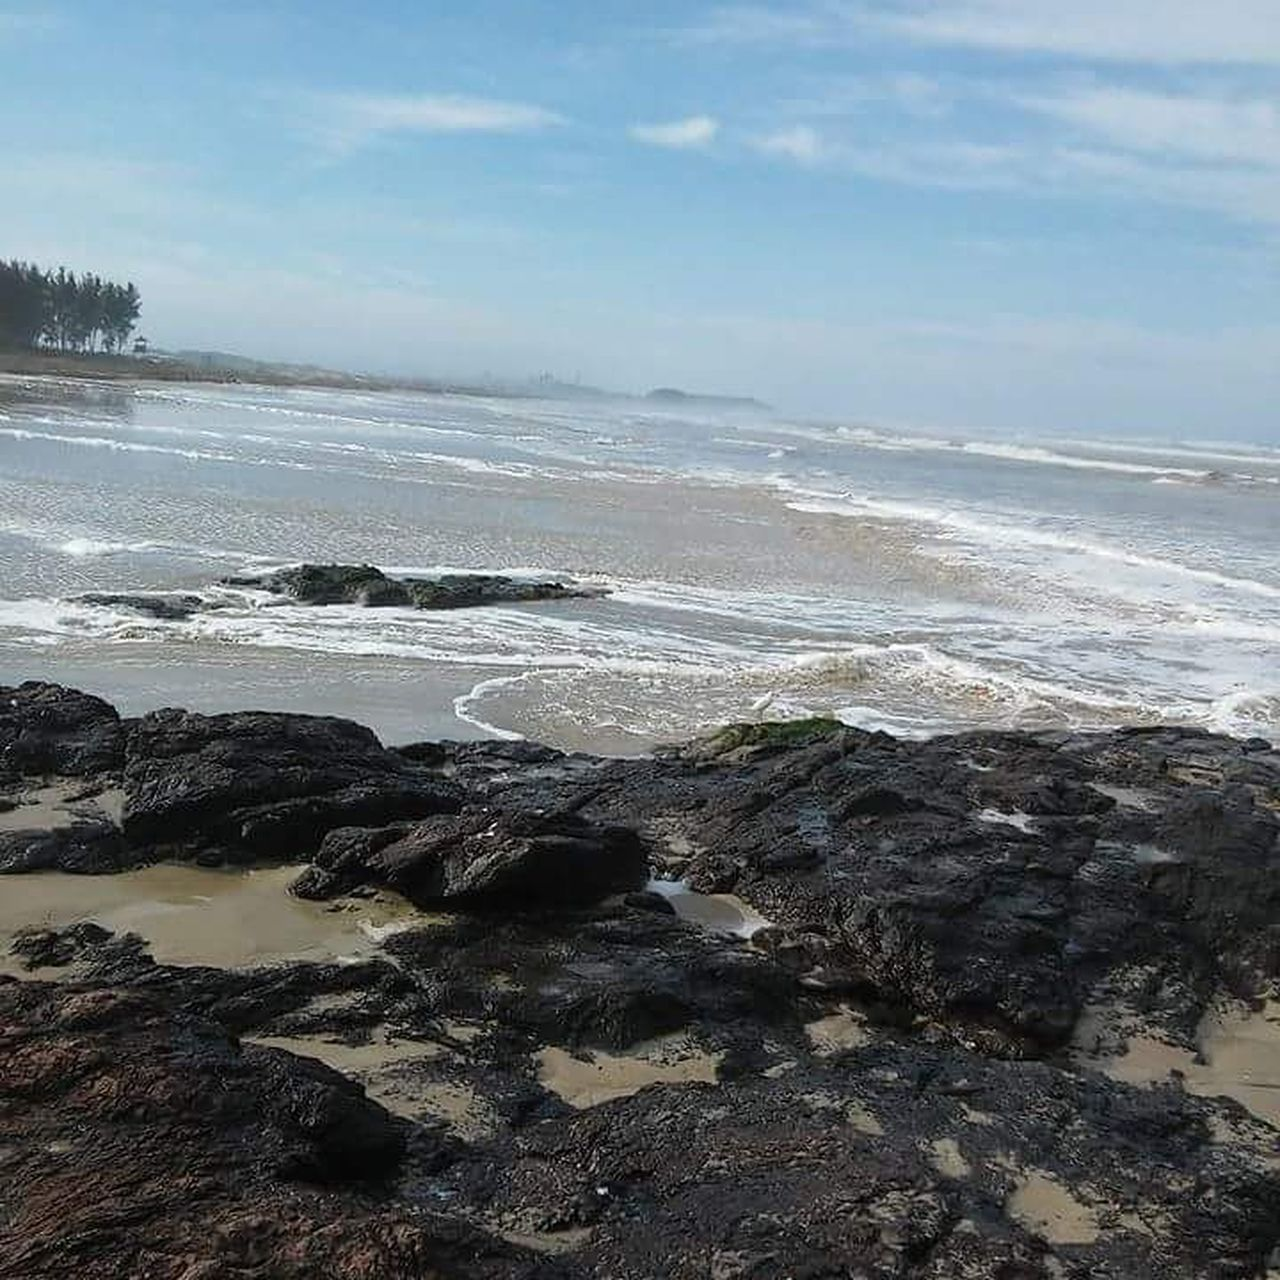 sea, nature, beauty in nature, water, beach, sky, scenics, tranquility, tranquil scene, no people, outdoors, rock - object, horizon over water, wave, day